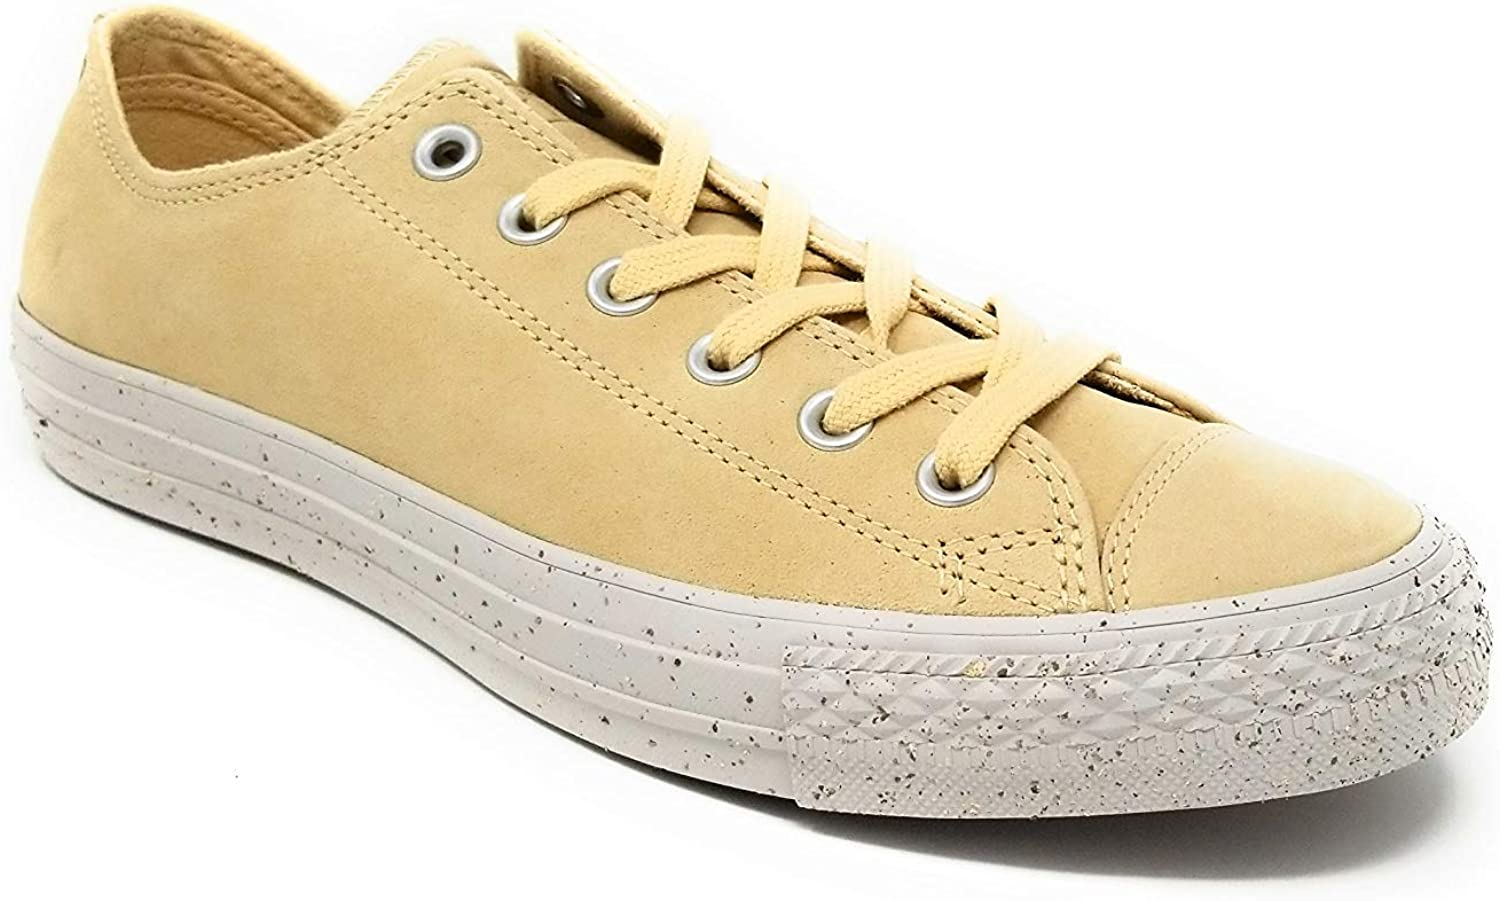 Converse Chuck Taylor All Star Athletic shoes Size